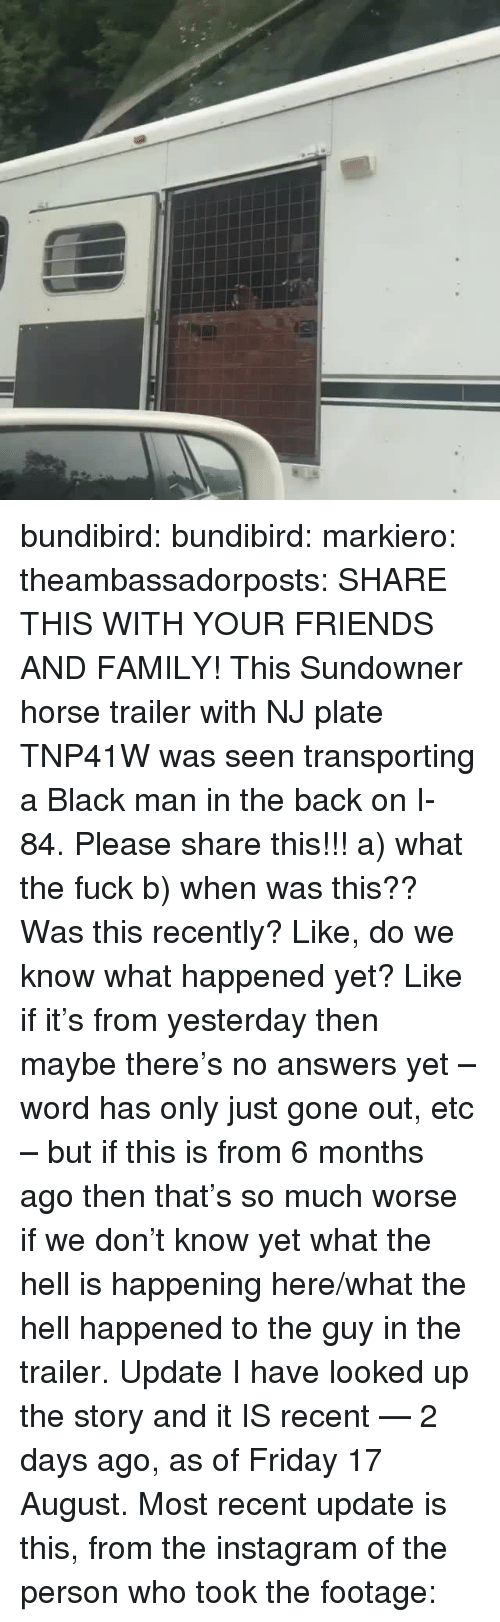 Family, Friday, and Friends: bundibird: bundibird:  markiero:   theambassadorposts:  SHARE THIS WITH YOUR FRIENDS AND FAMILY!  This Sundowner horse trailer with NJ plate TNP41W was seen transporting a Black man in the back on I-84.   Please share this!!!   a) what the fuck b) when was this?? Was this recently? Like, do we know what happened yet? Like if it's from yesterday then maybe there's no answers yet – word has only just gone out, etc – but if this is from 6 months ago then that's so much worse if we don't know yet what the hell is happening here/what the hell happened to the guy in the trailer.   Update I have looked up the story and it IS recent — 2 days ago, as of Friday 17 August. Most recent update is this, from the instagram of the person who took the footage: